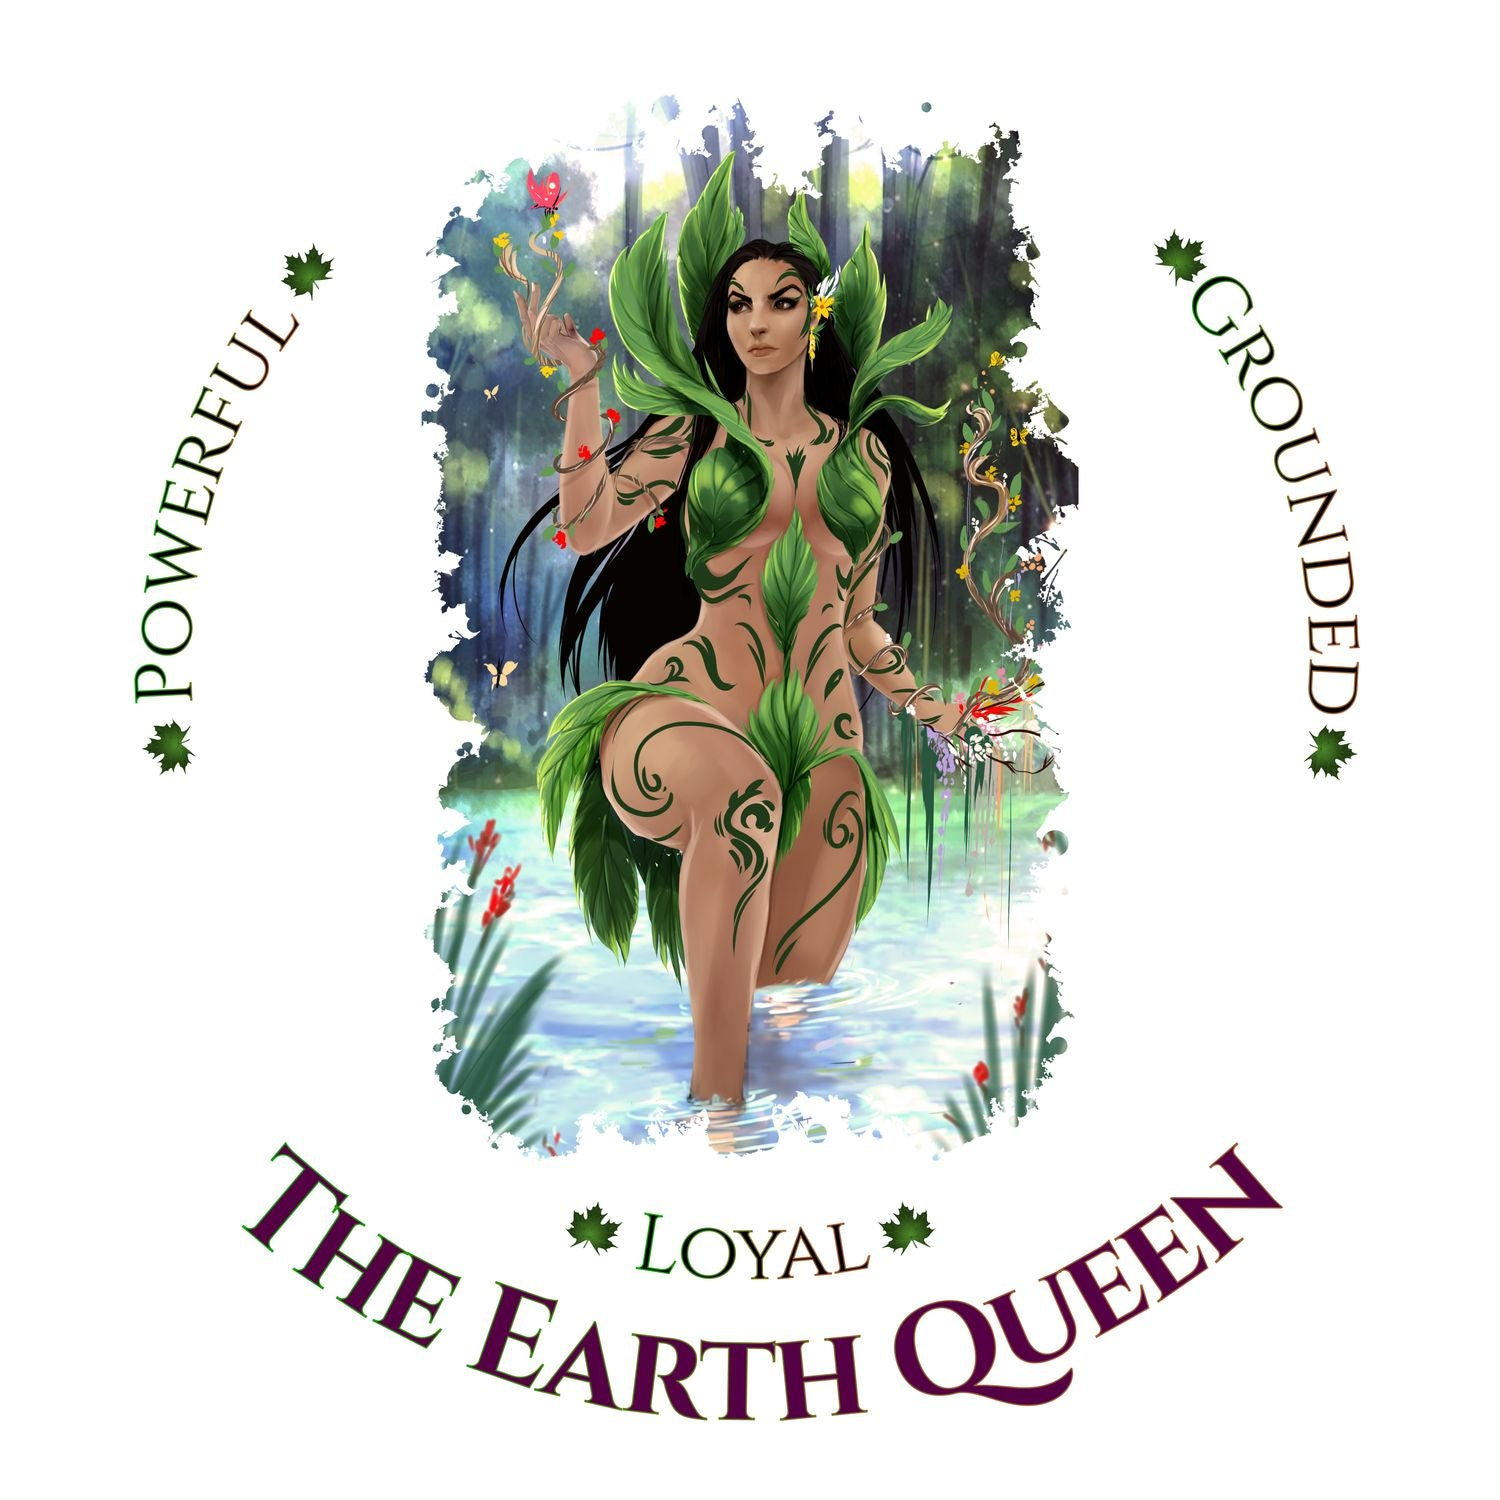 Naturally Wicked Earth Queen Surrounded By Water & Text - Powerful, Loyal & Grounded